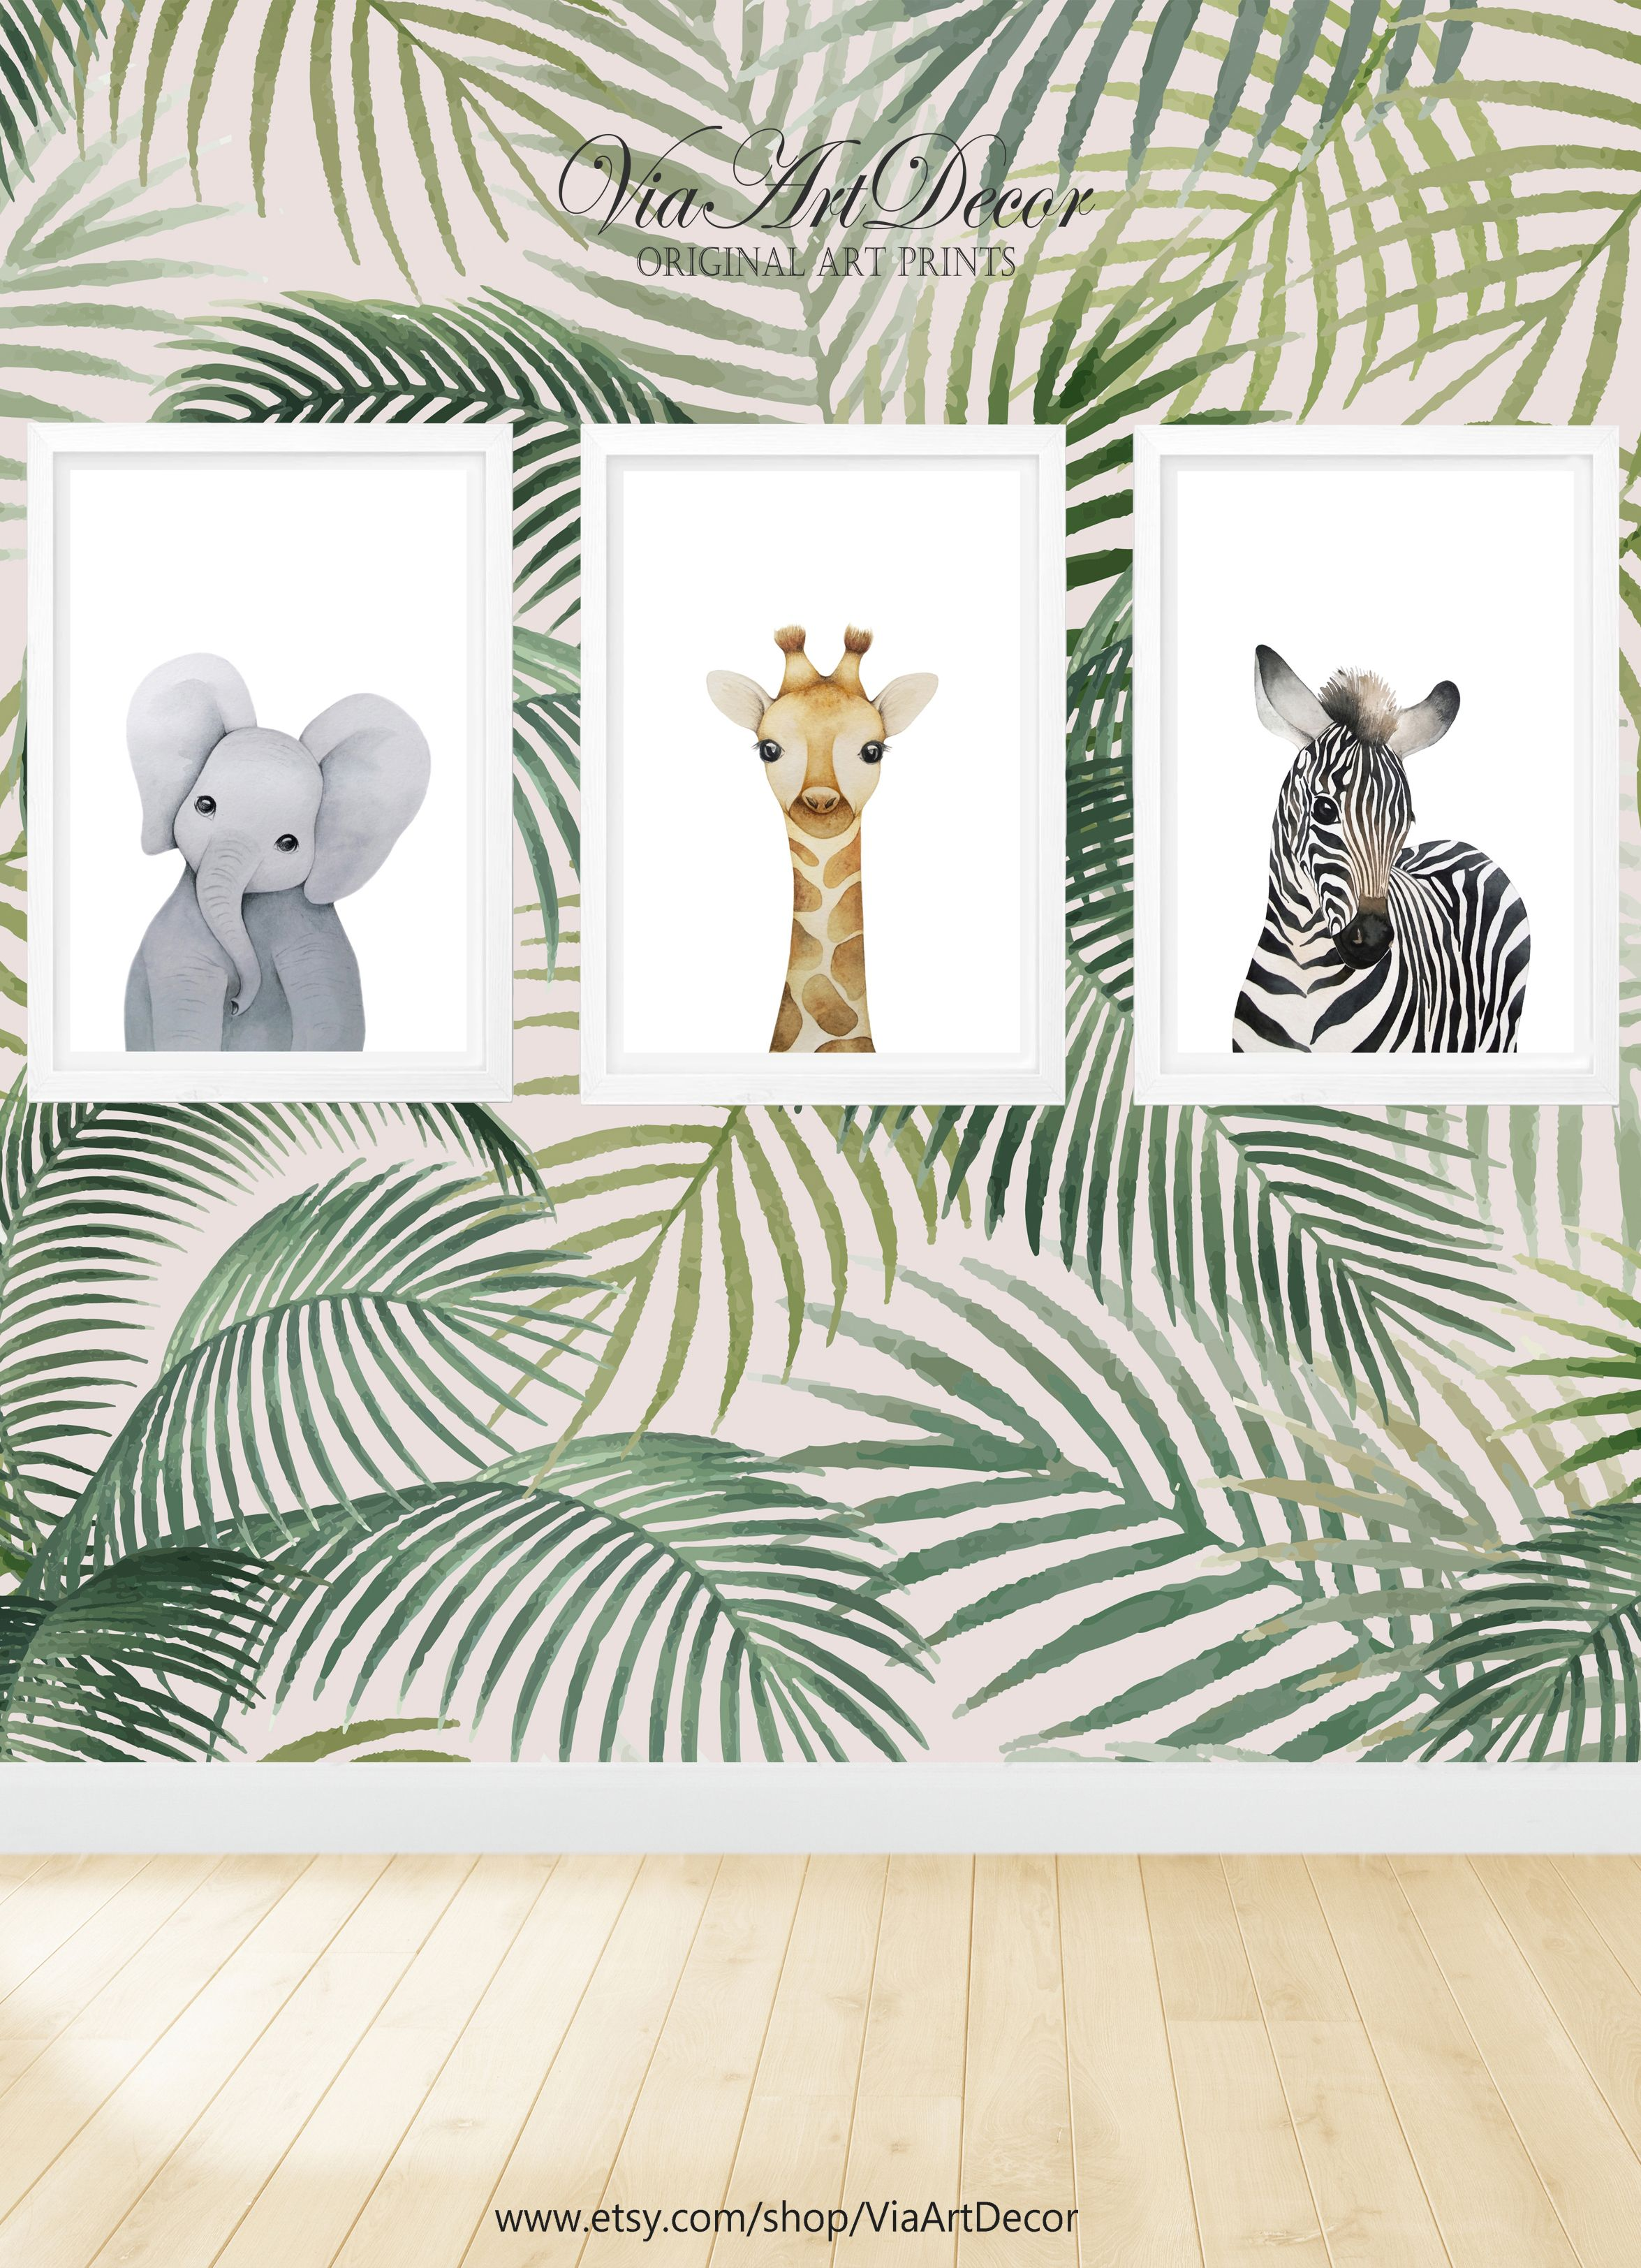 Safari Animals Set Of 3 Print Nursery Wall Art Printable Zebra Etsy In 2021 Safari Animal Prints Nursery Nursery Wall Art Printable Safari Animal Prints